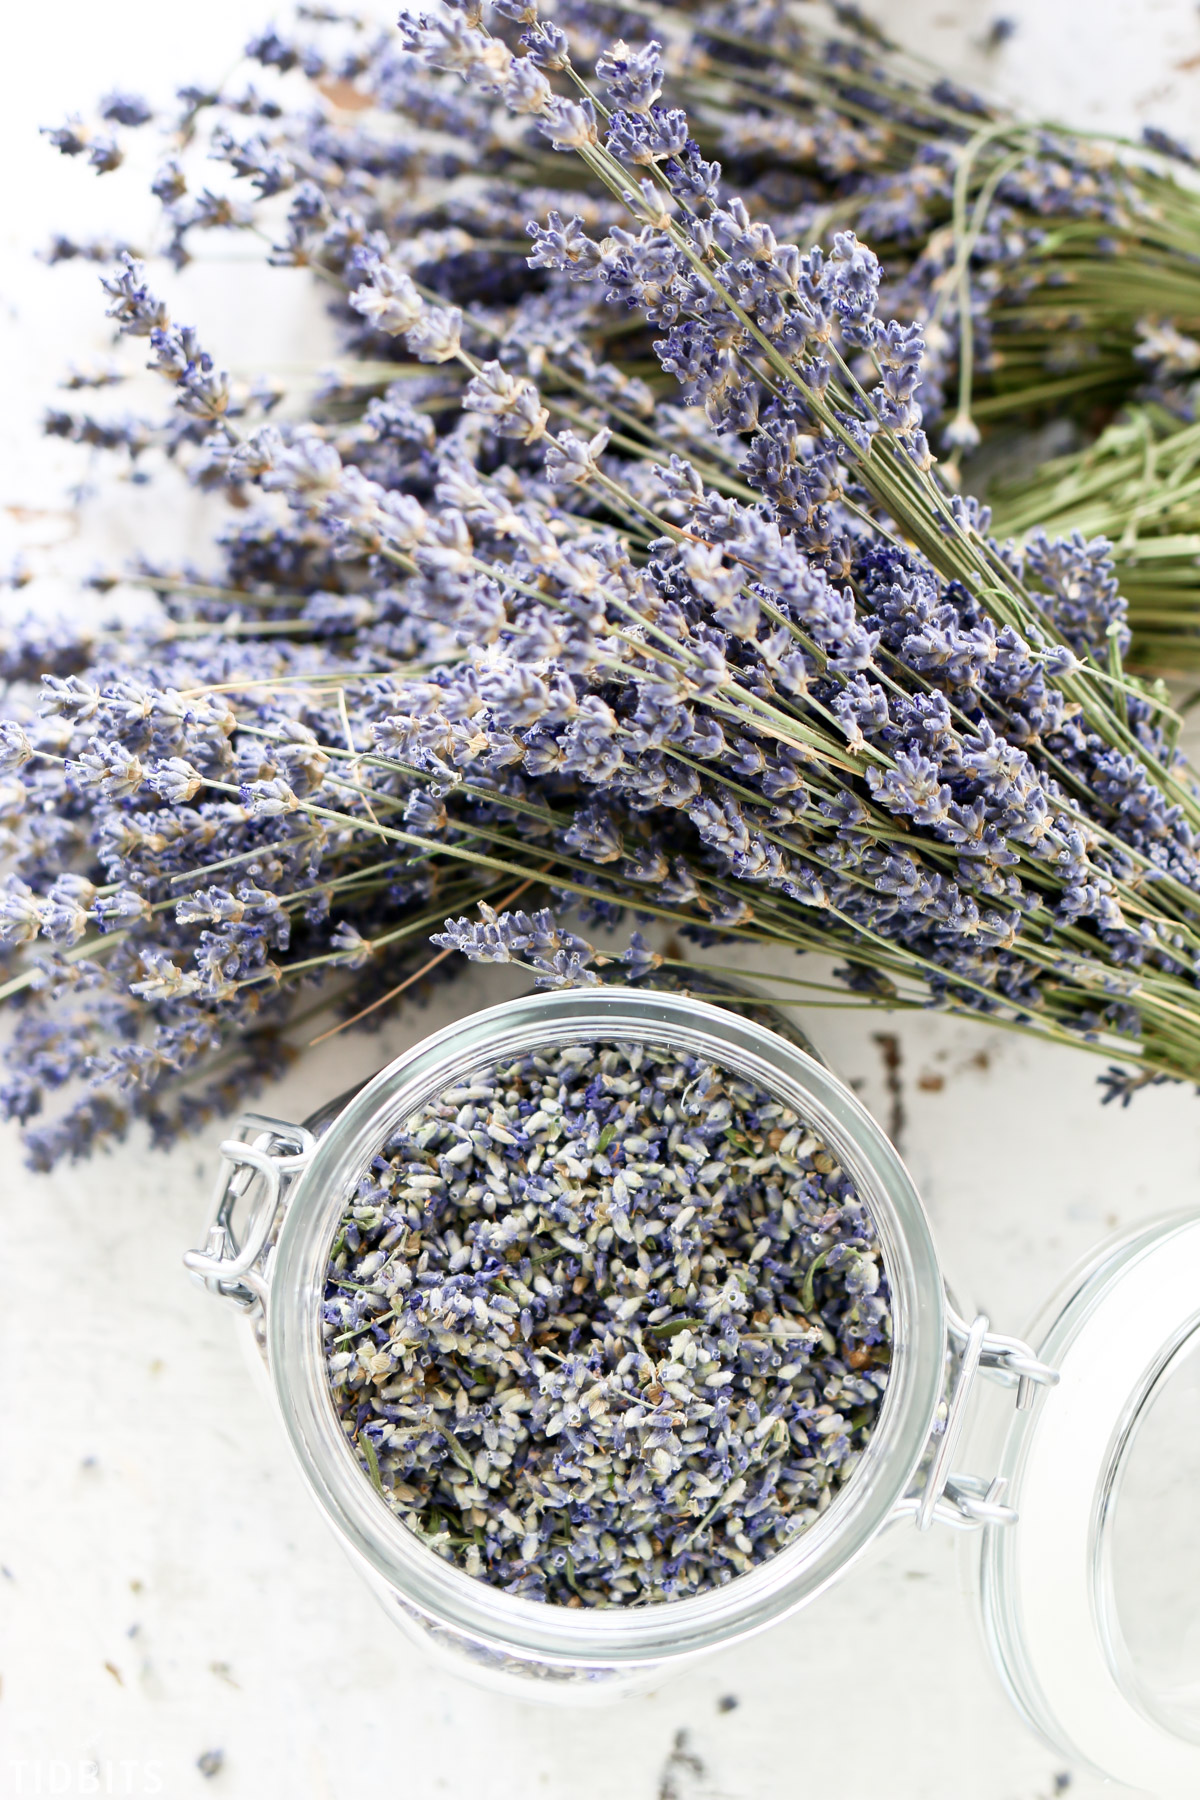 remove dried lavender buds from stem